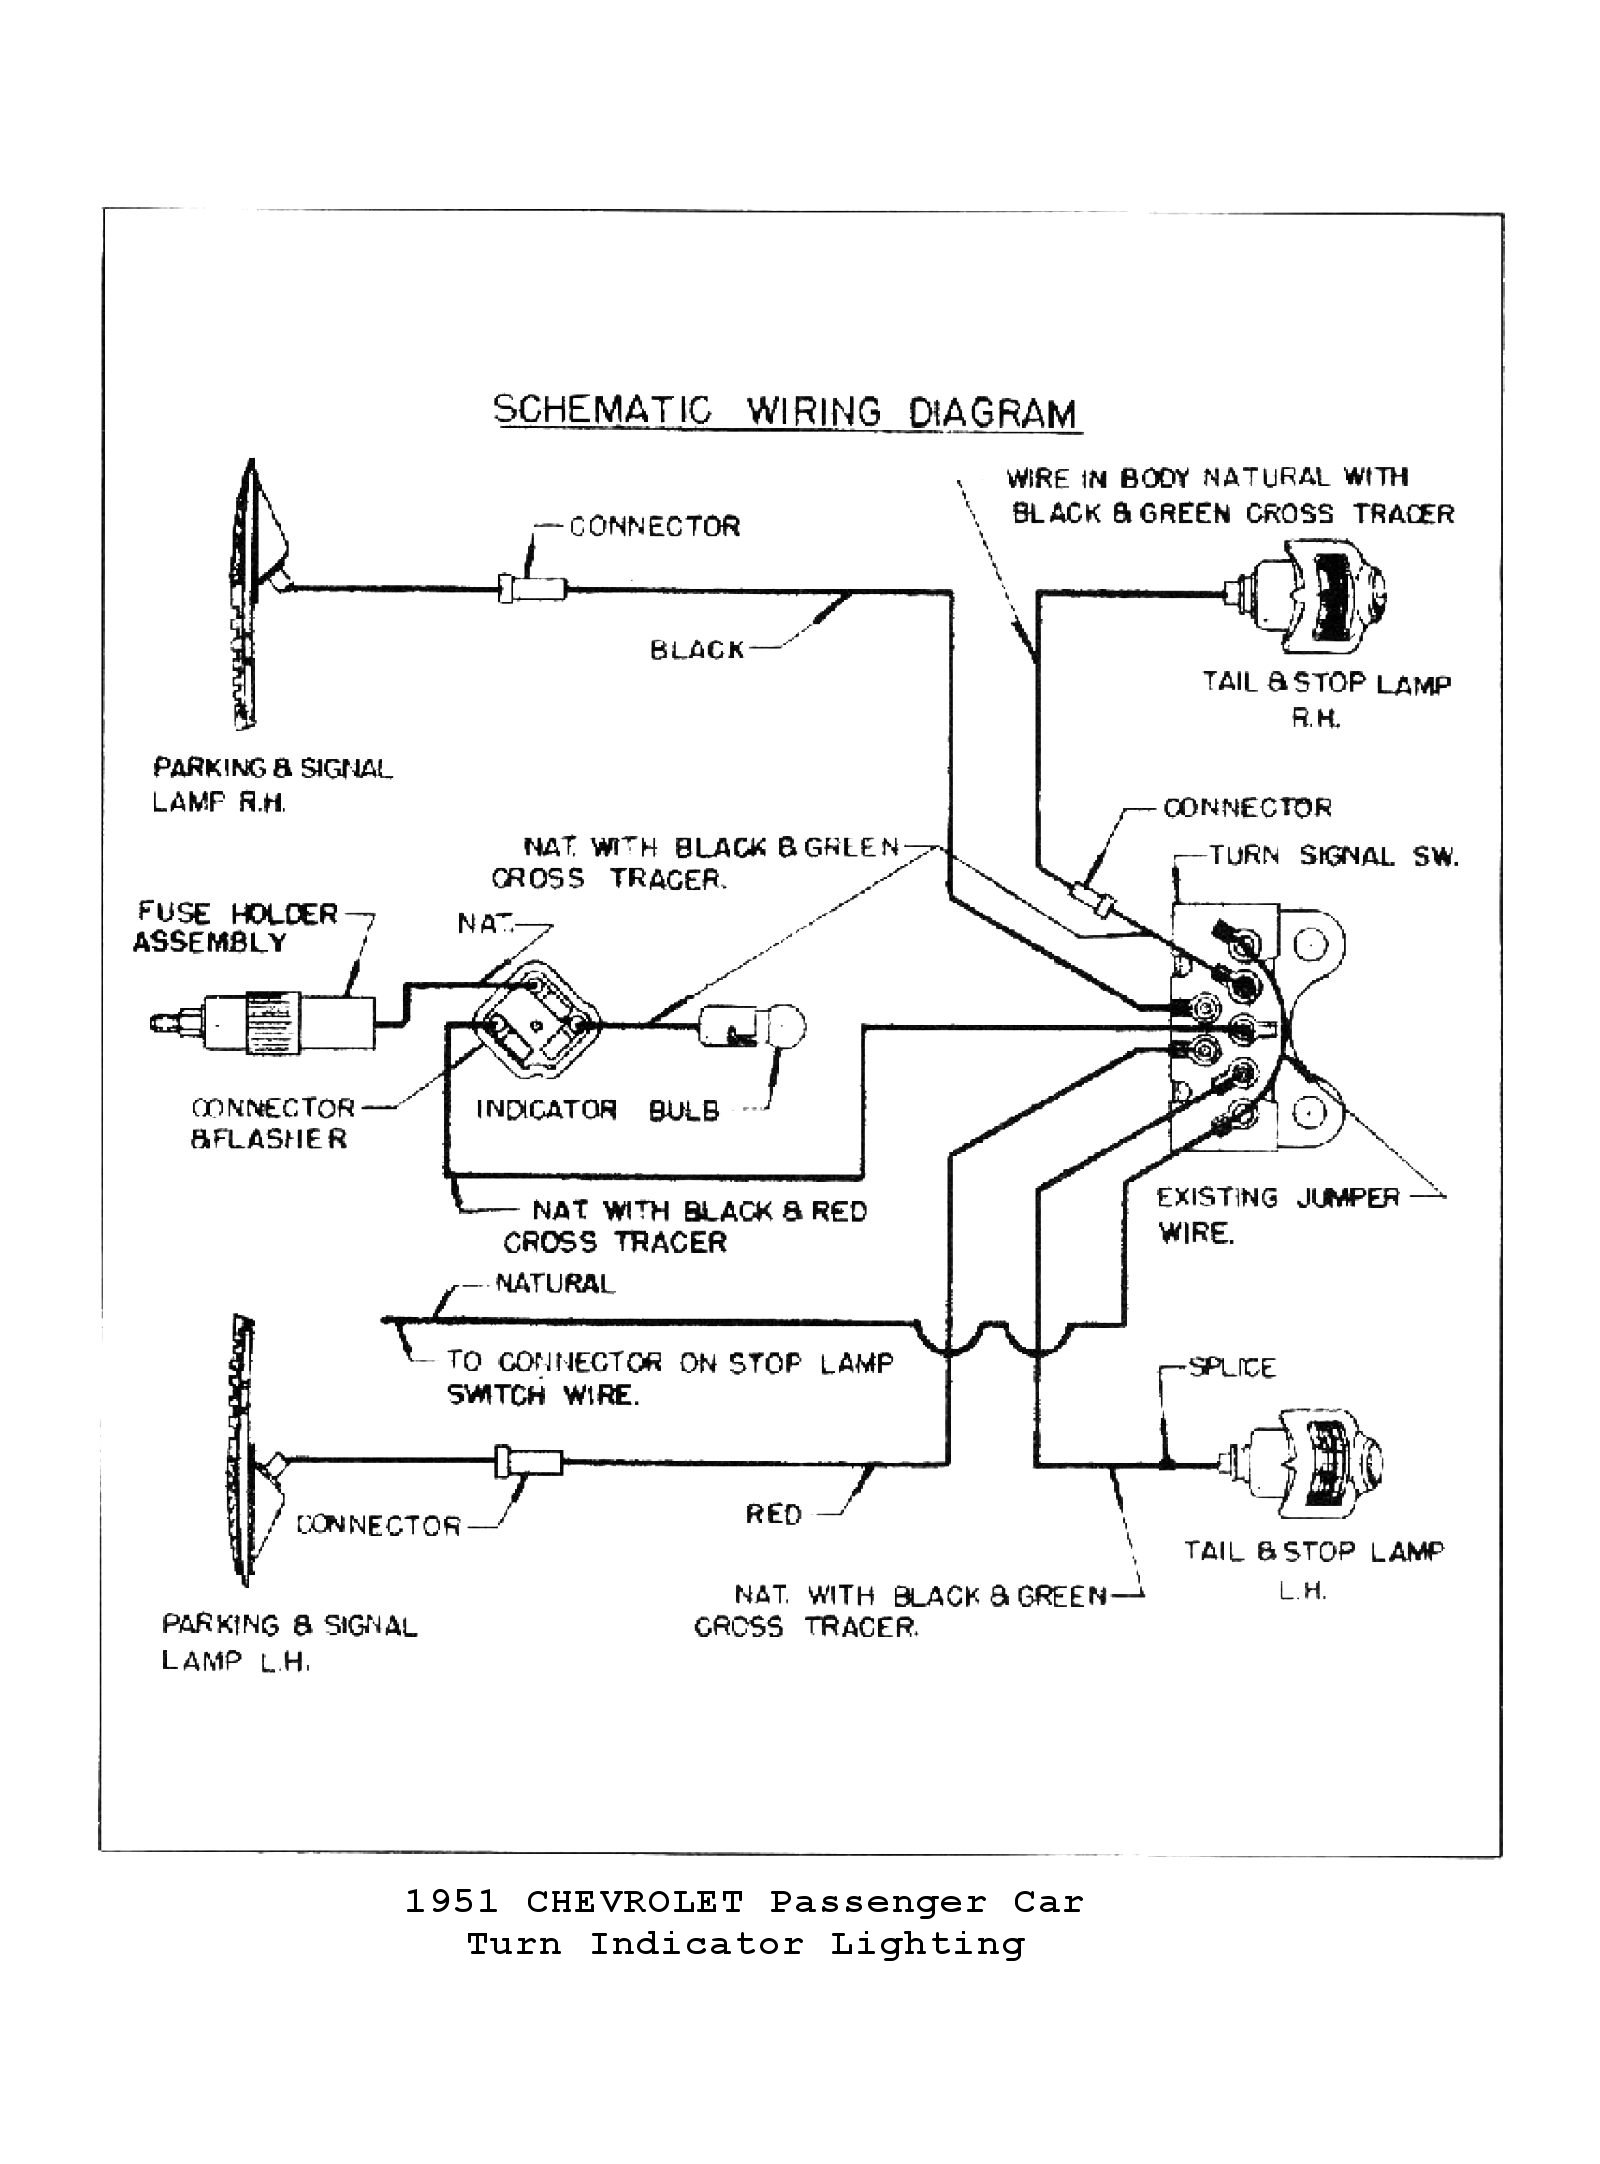 hight resolution of 55 chevy tail light wiring harness wiring diagram list 1953 chevy tail light wiring